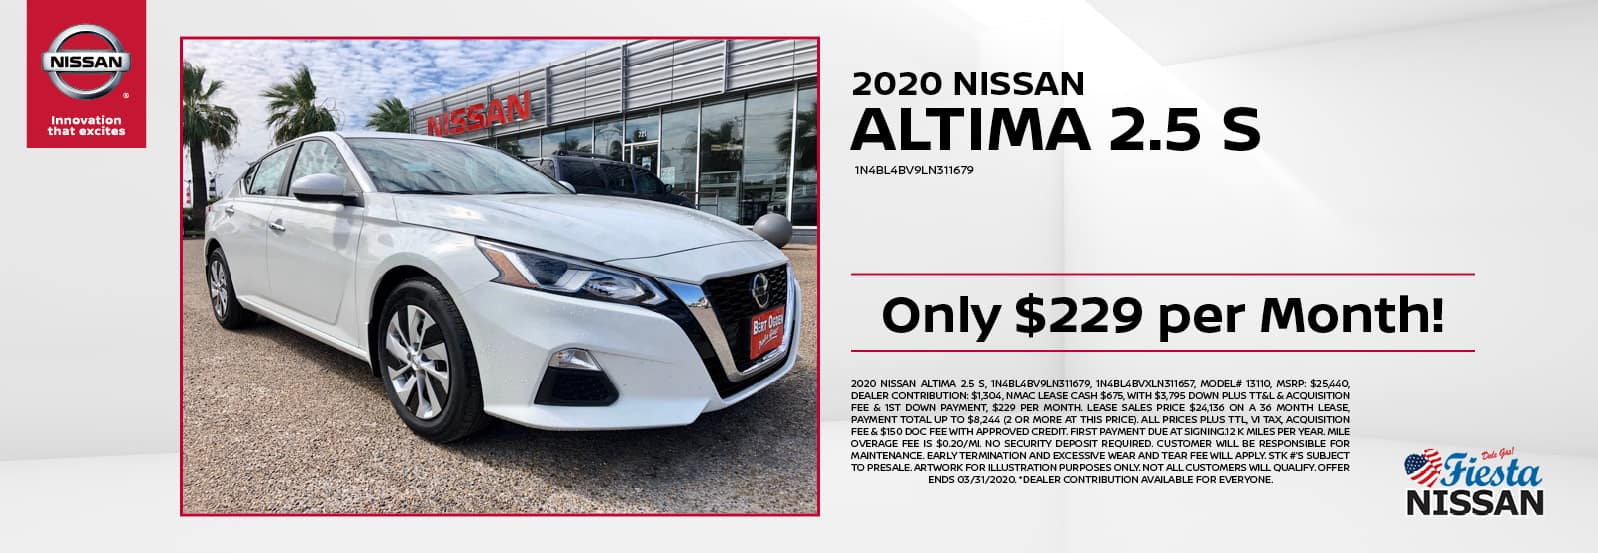 2020 Nissan Altima 2.5 S at Fiesta Nissan in Edinburg, TX